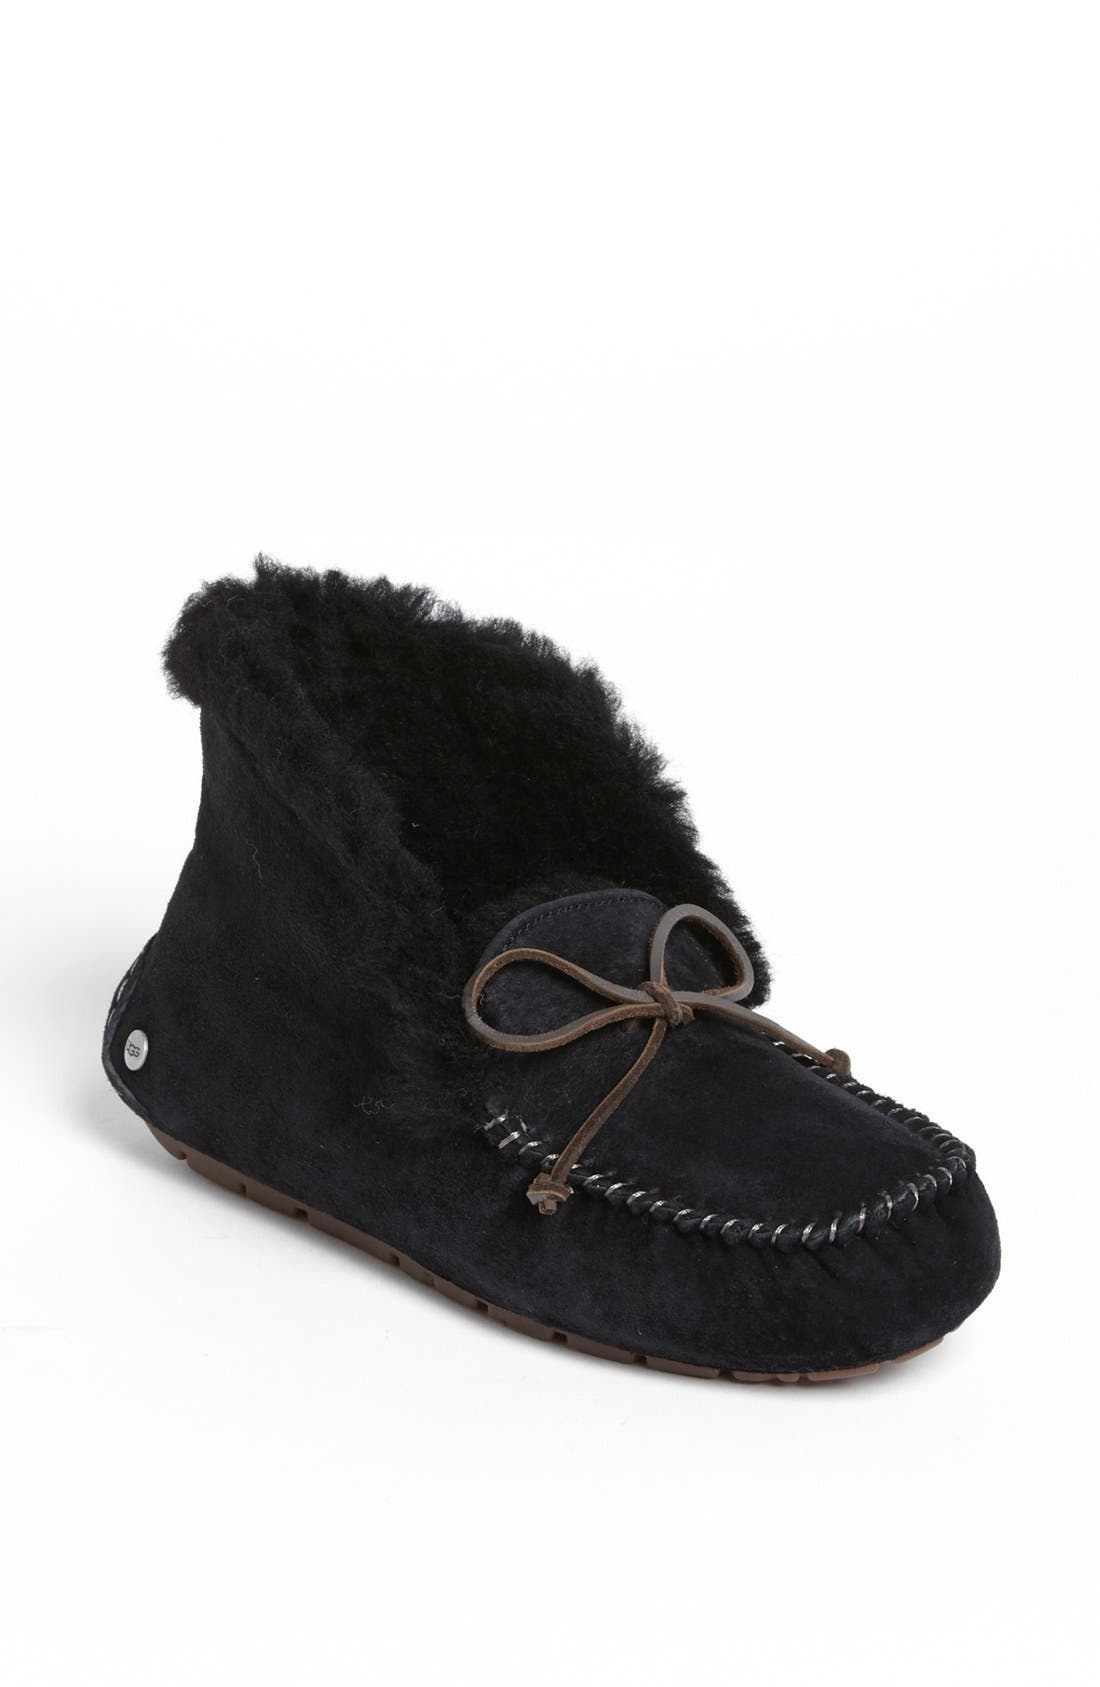 Alternate Image 1 Selected - UGG® UGGpure™ Alena Suede Slipper Bootie (Women)